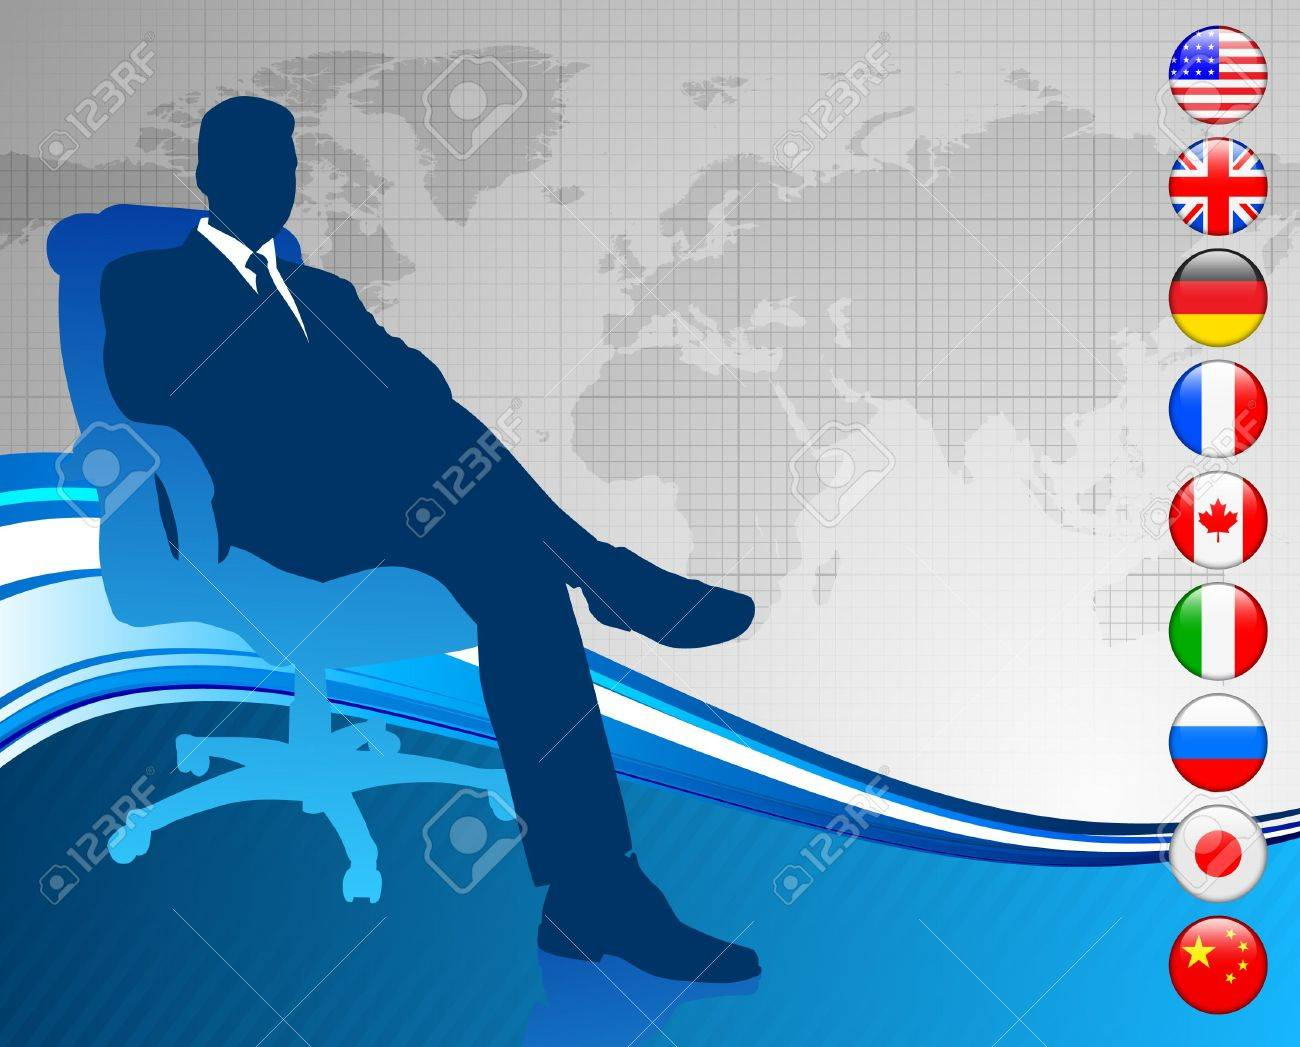 Businessman with world map and flag buttonsOriginal Vector Illustration Stock Illustration - 6441193